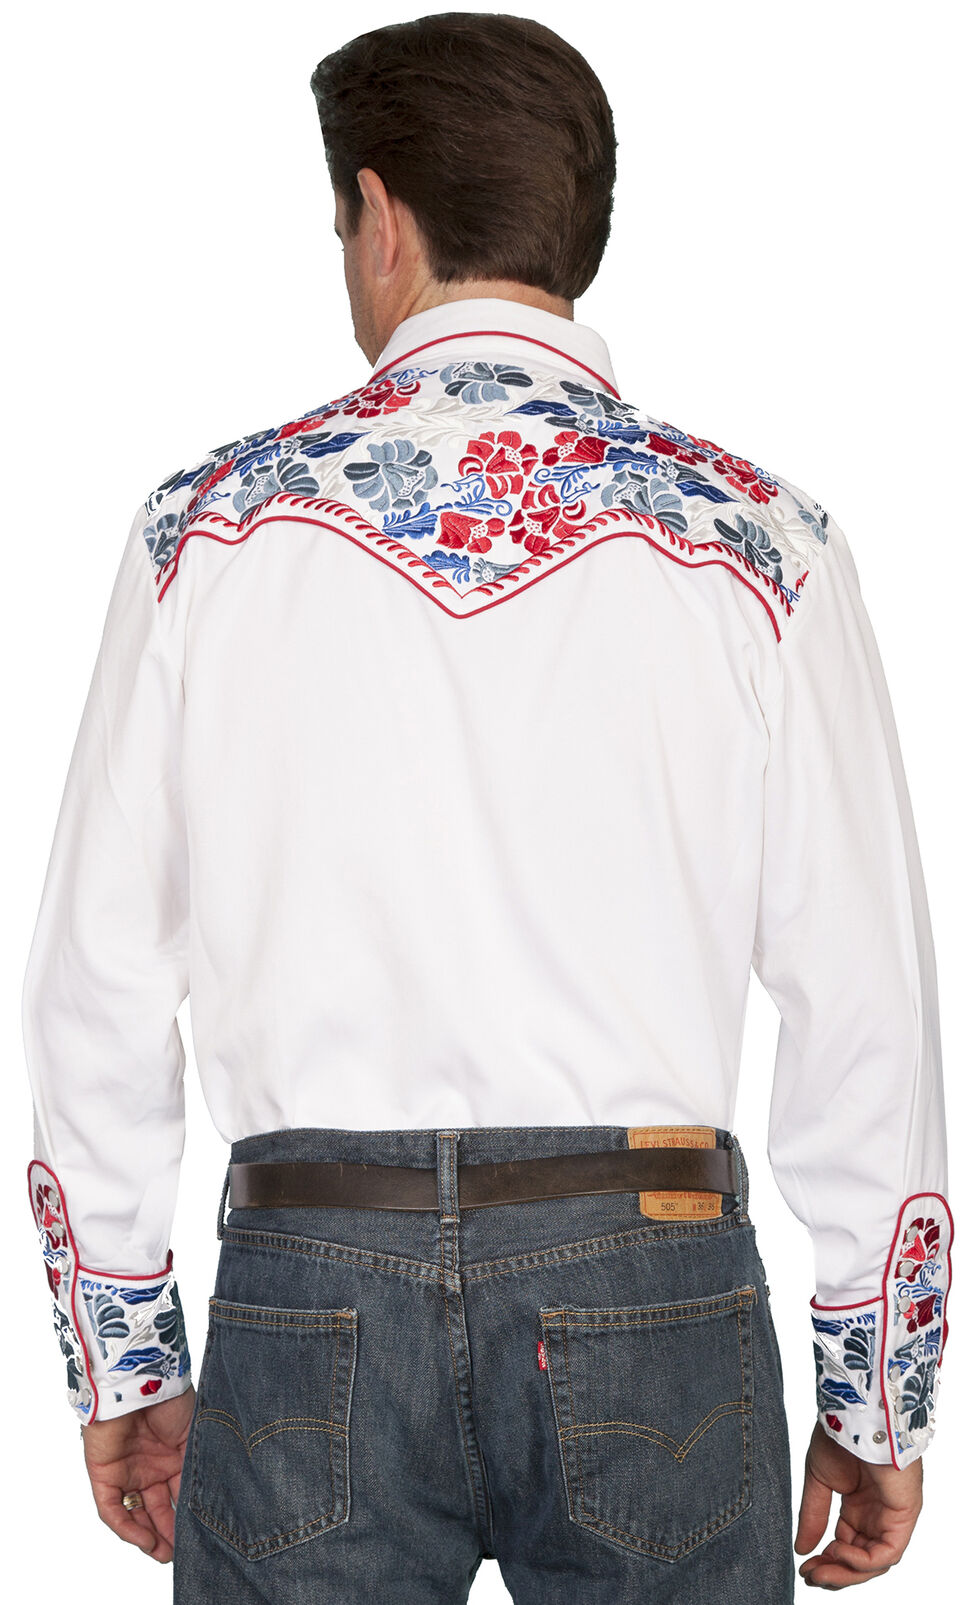 Scully Multi-Colored Floral Embroidered Shirt - Big and Tall, White, hi-res